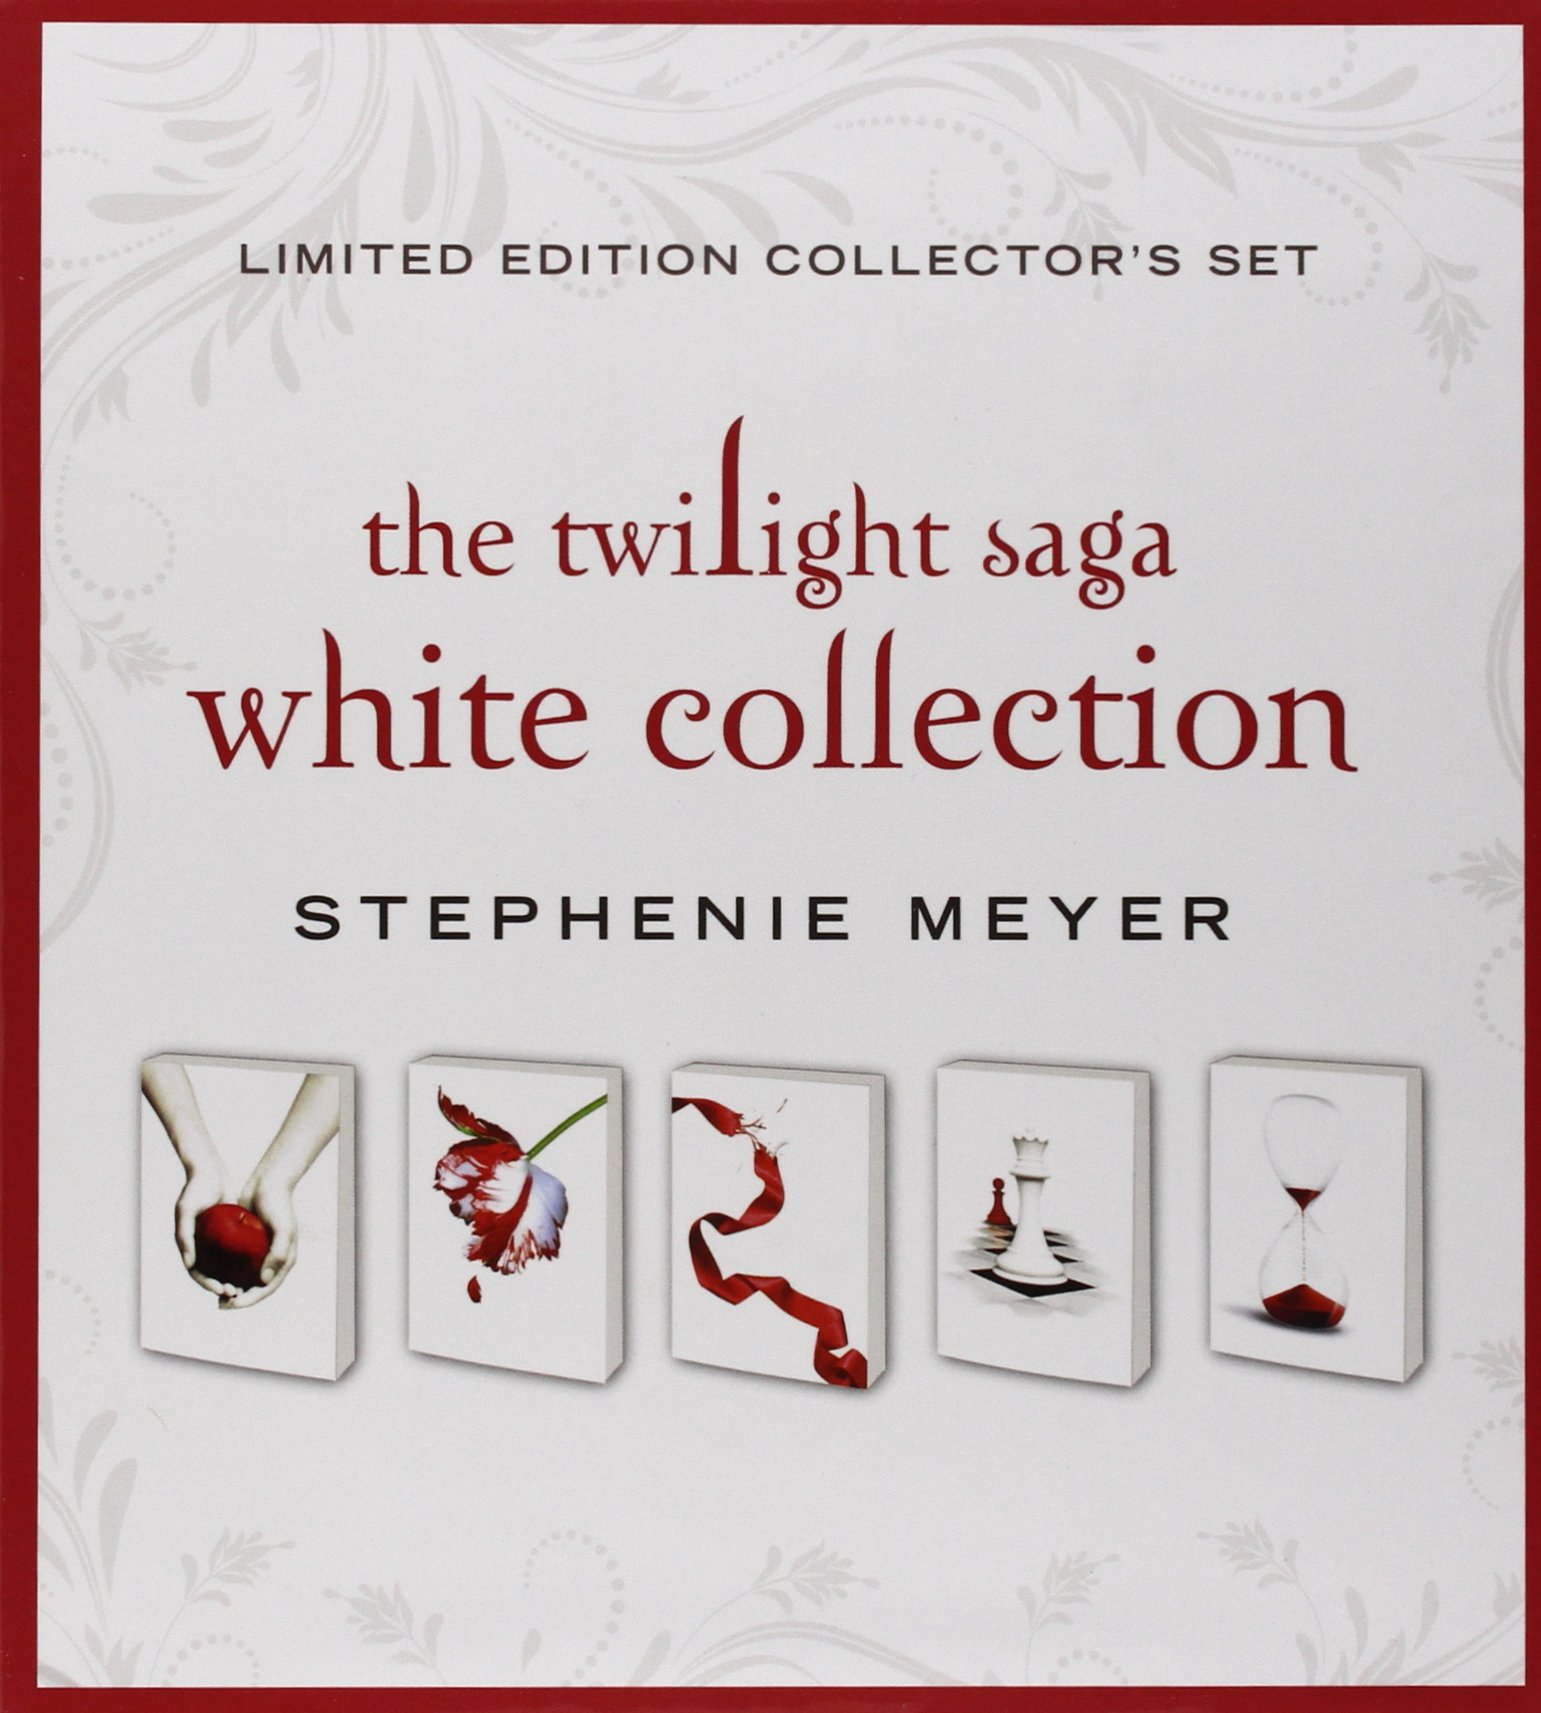 The Twilight Saga White Collection by LITTLE BROWN